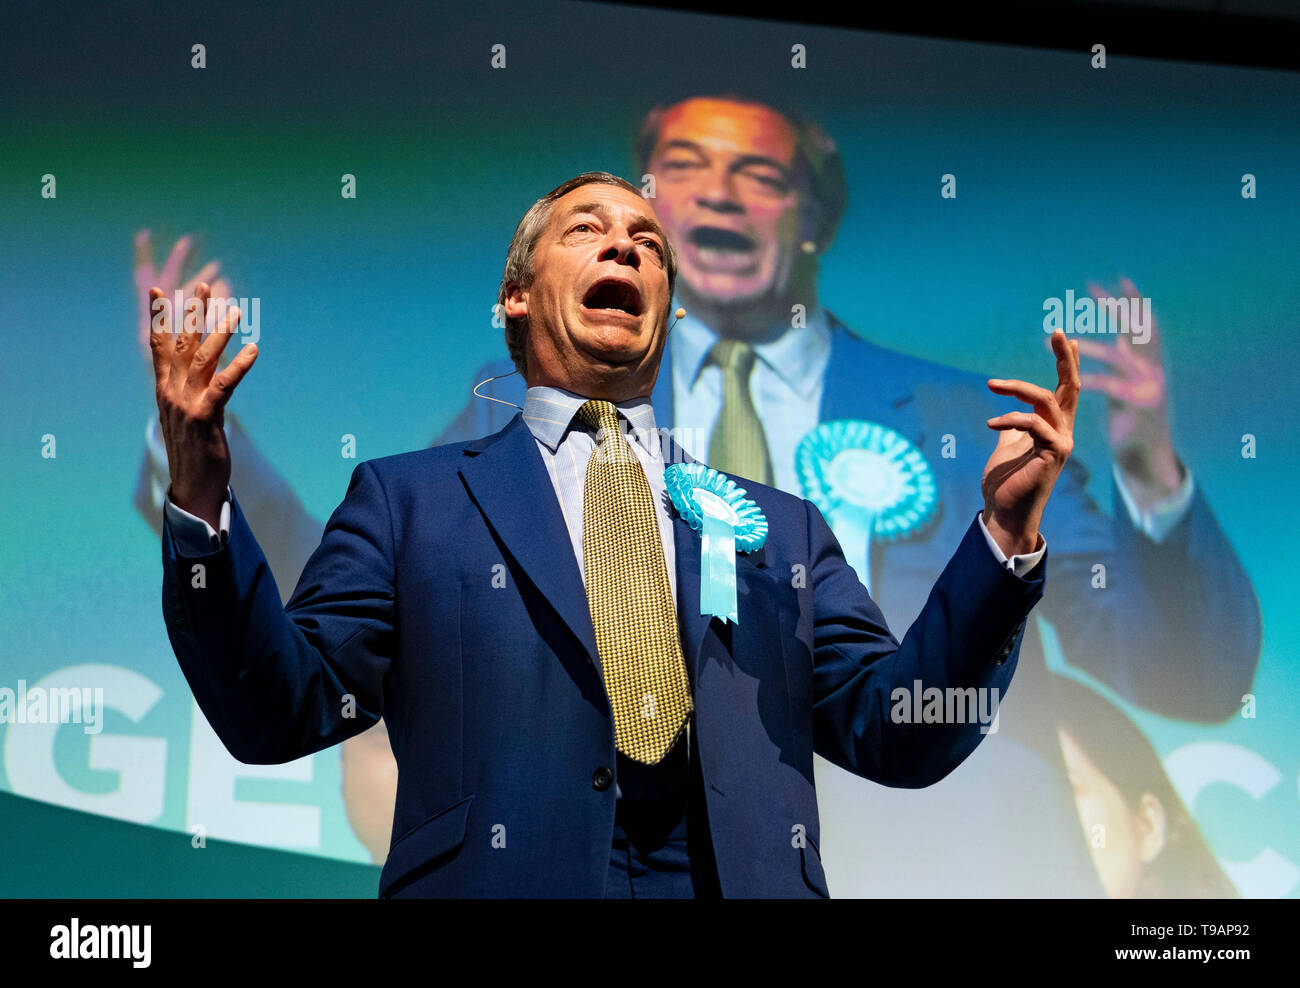 Edinburgh, Scotland, UK. 17th May, 2019. Nigel Farage in Edinburgh for a rally with the Brexit Party's European election candidates. Held at the Corn Exchange in the city. Credit: Iain Masterton/Alamy Live News Stock Photo